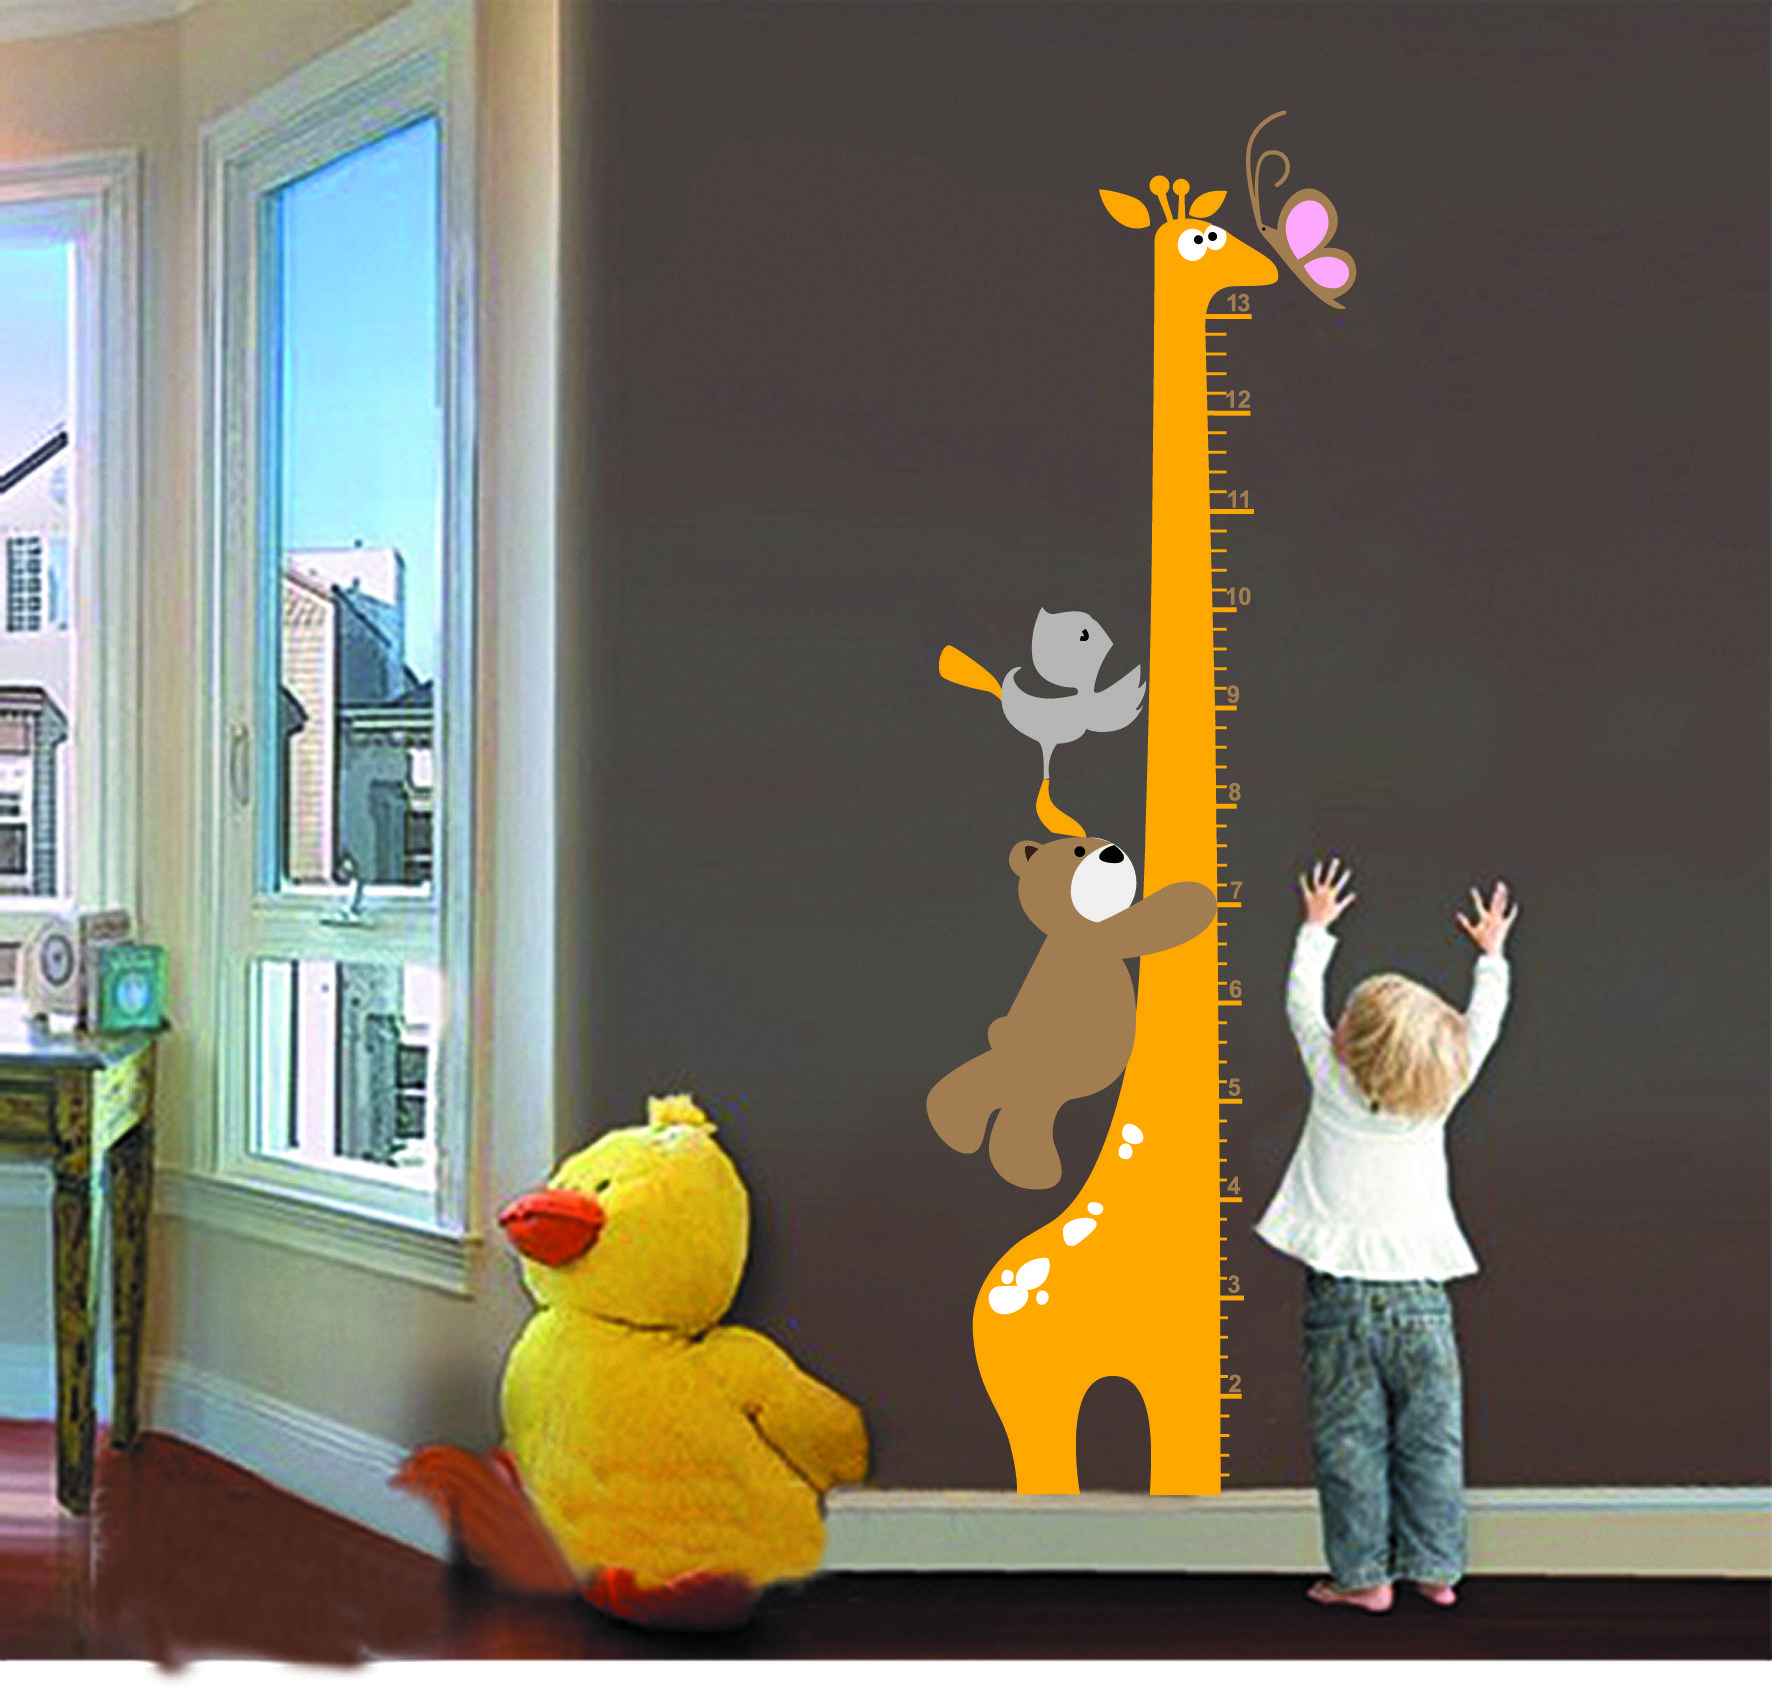 Centimeter height measurement growth chart with cartoon giraffe new cartoon giraffe bear children kid growth height chart removable wall sticker instructions the surface is smooth do not stick on the rough or geenschuldenfo Image collections